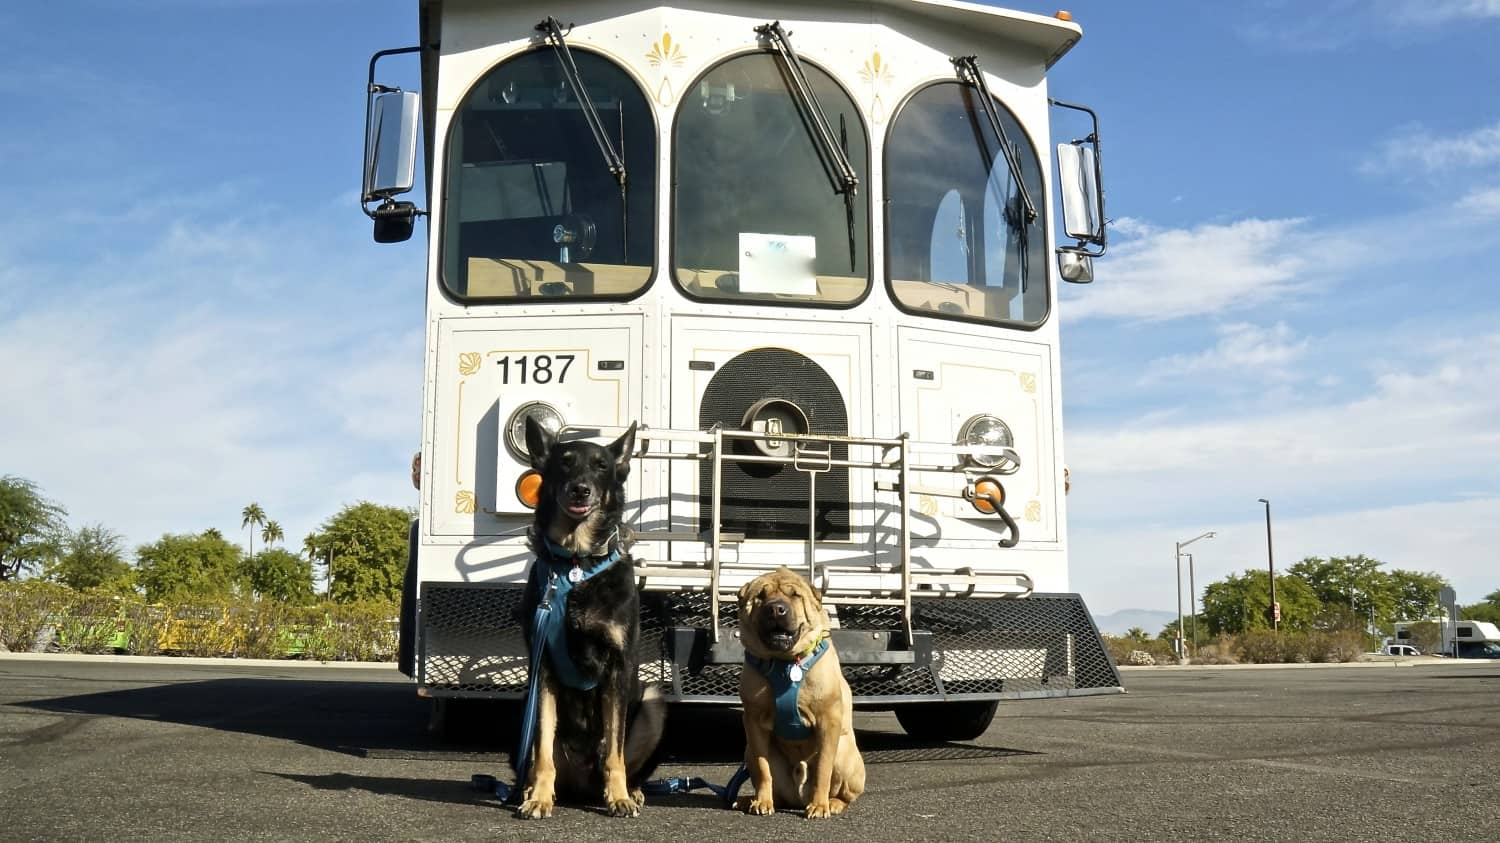 Buster and Ty, GoPetFriendly.com dogs, posing in front of a pet-friendly Buzz trolley in Palm Springs, CA